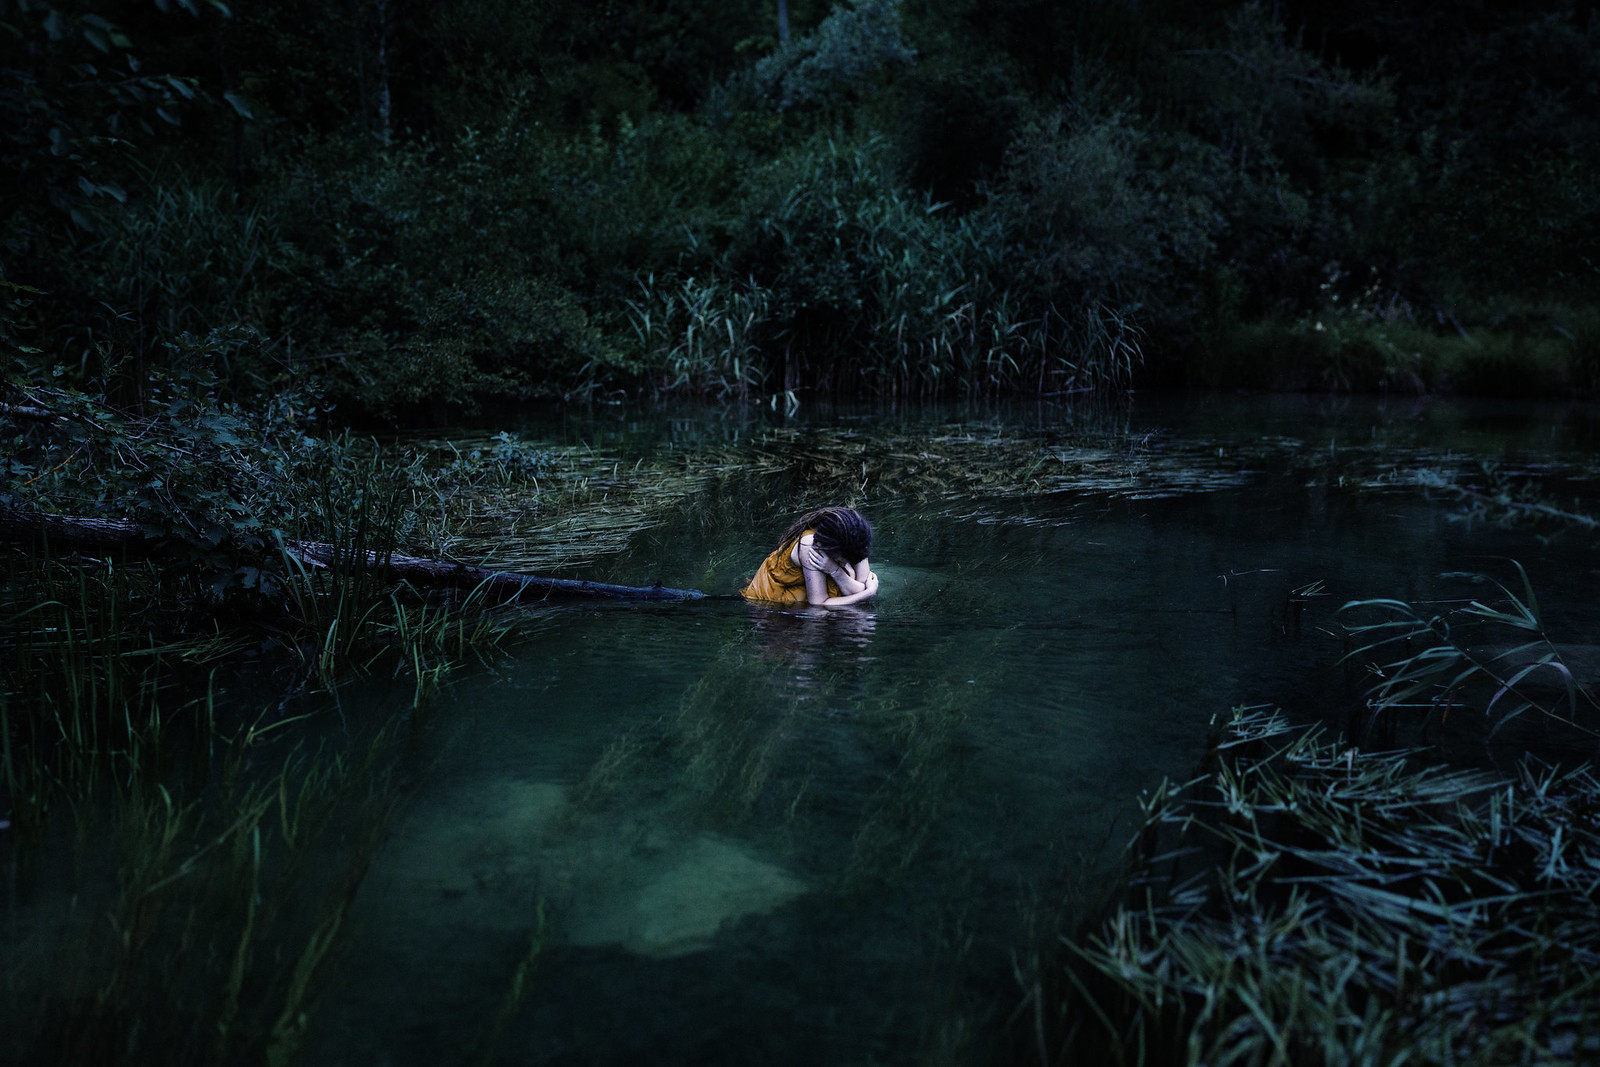 Fine art loneliness portrait depicting a girl in a sad pose in a lake.